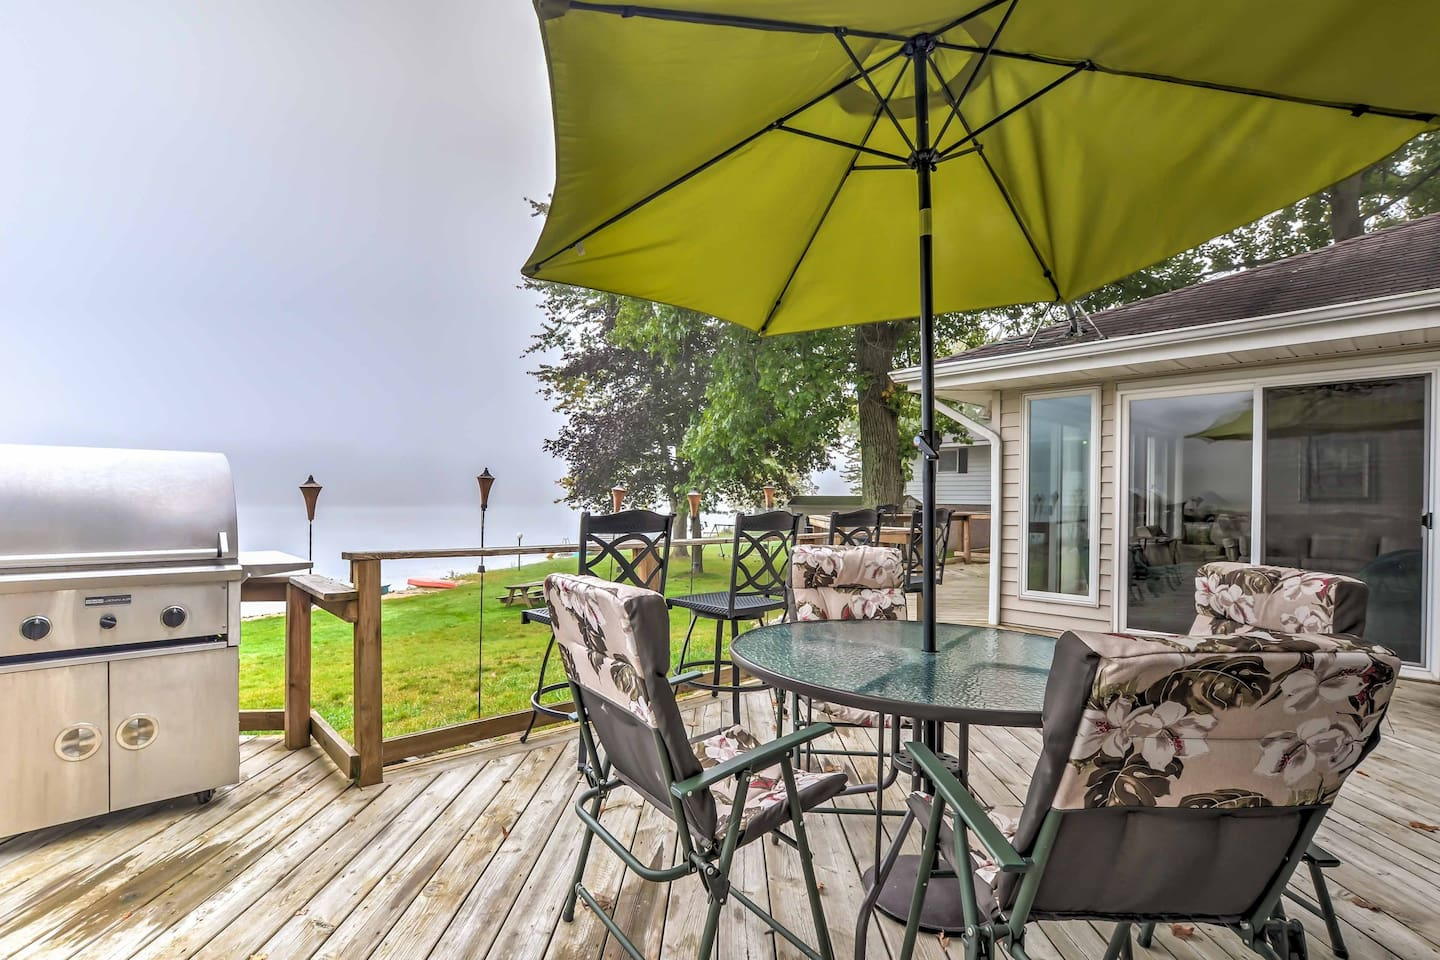 Your dream getaway awaits you at this lakefront vacation rental home.